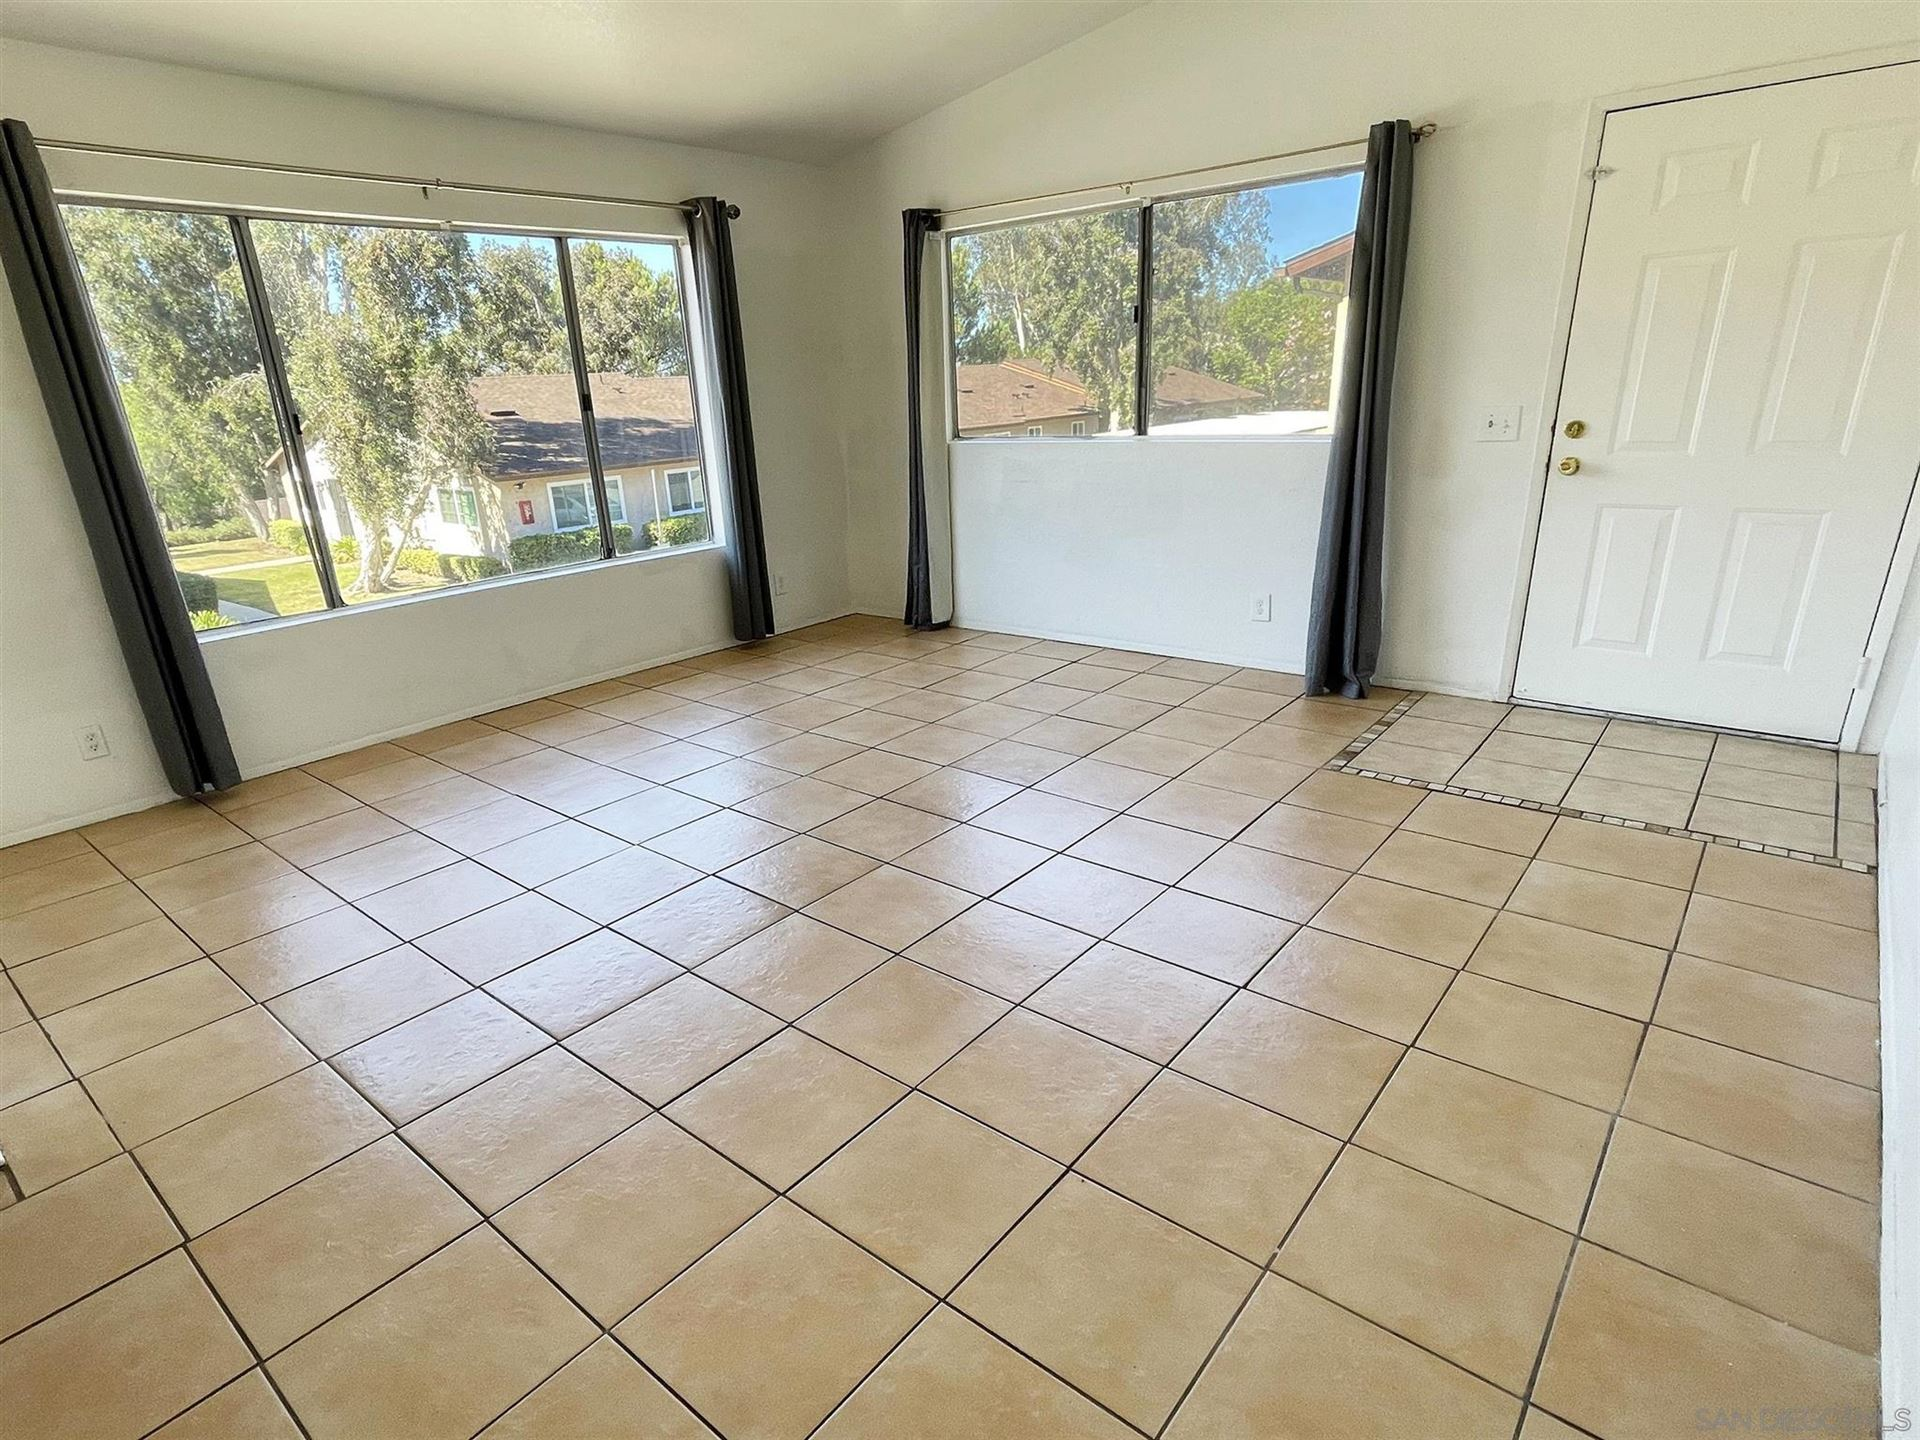 Photo of 9270 Amys #43, Spring Valley, CA 91977 (MLS # 210026286)